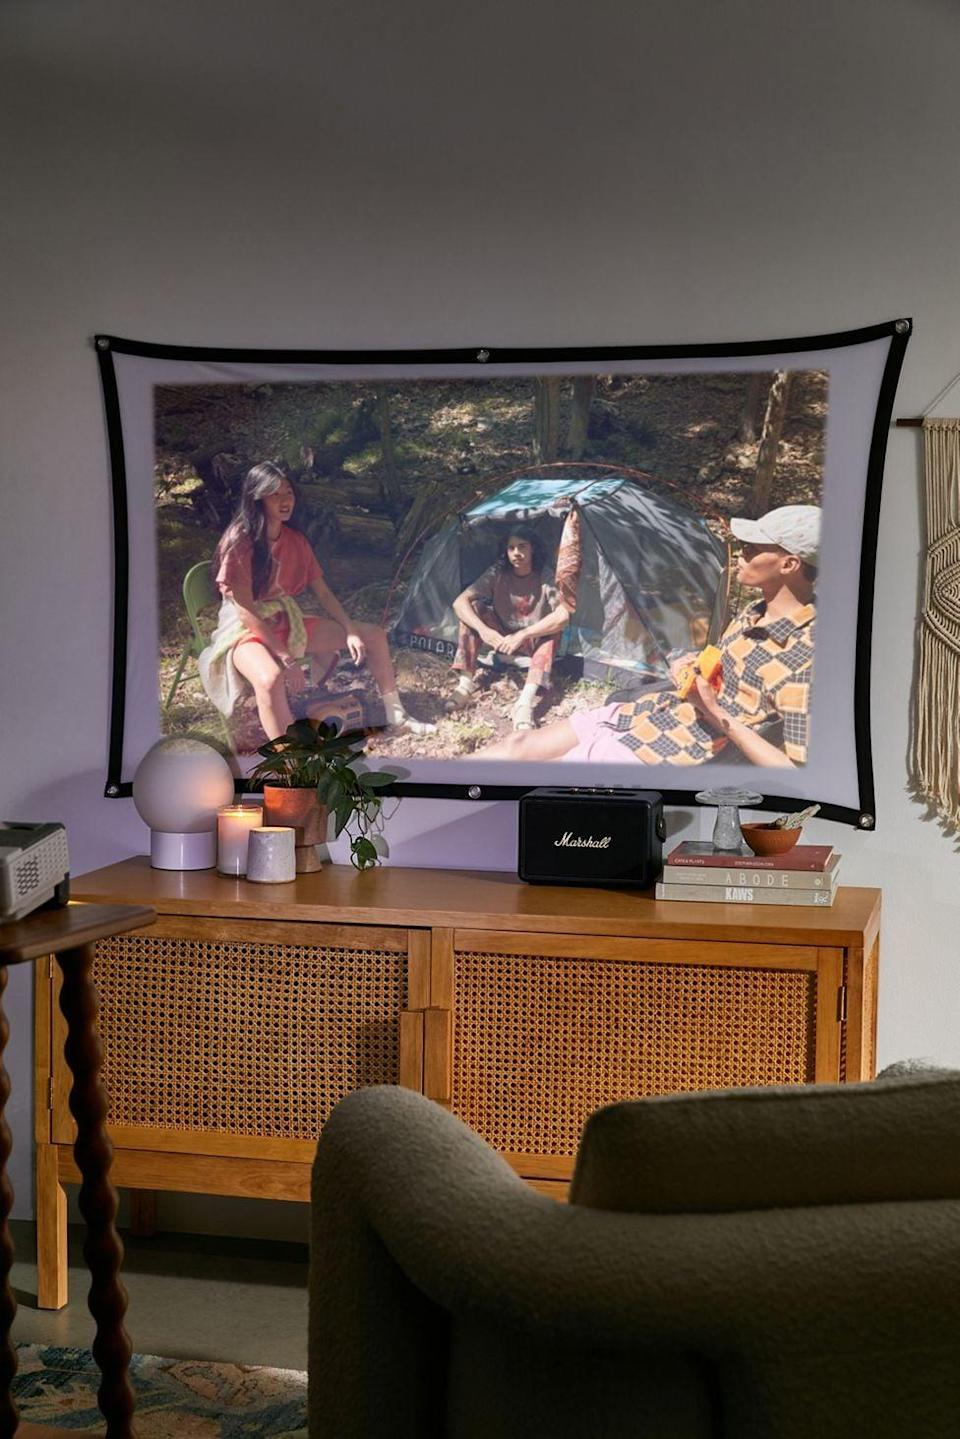 <p>They can watch their favorite movie anywhere with the <span>Packard Bell Home Theater Projector And Screen Set</span> ($98). The compact design makes it easy to move around.</p>